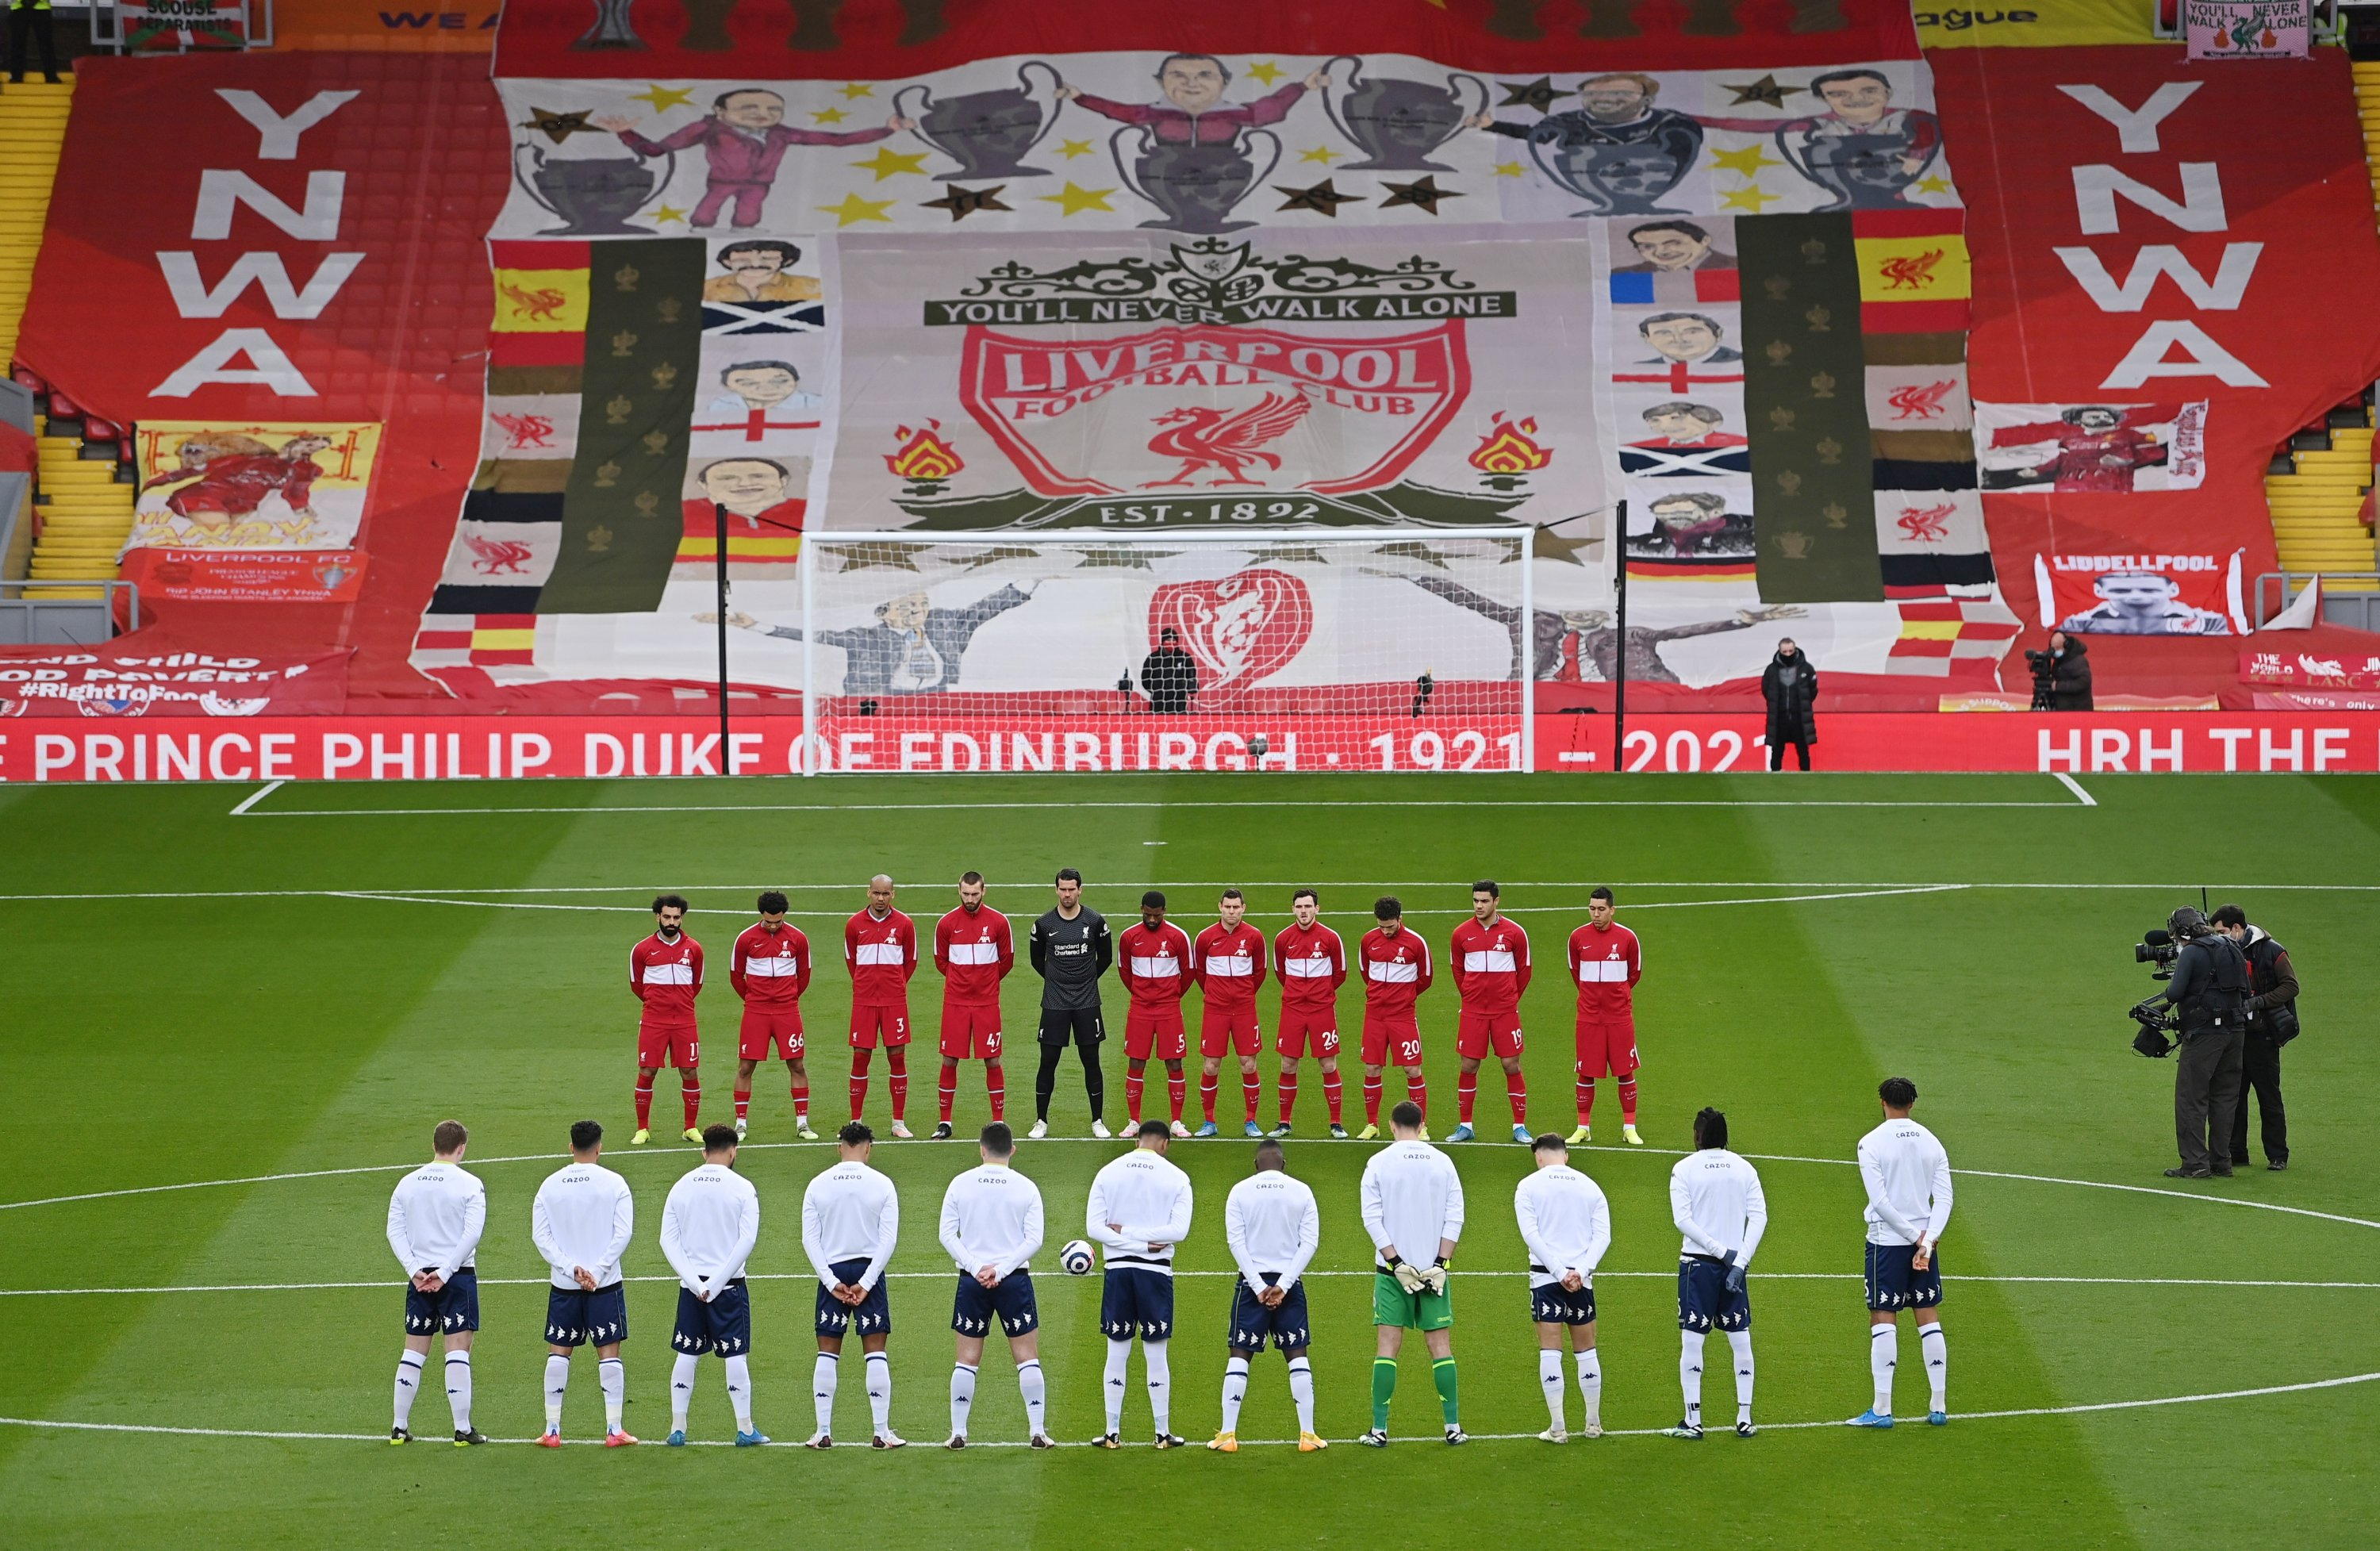 General view of players during a two minute silence after Britain's Prince Philip, husband of Queen Elizabeth, died at the age of 99, ahead of Premier League match between Liverpool and Aston Villa at Anfield, Liverpool, Britain, April 10, 2021. (Reuters/Laurence Griffiths/Pool Photo)